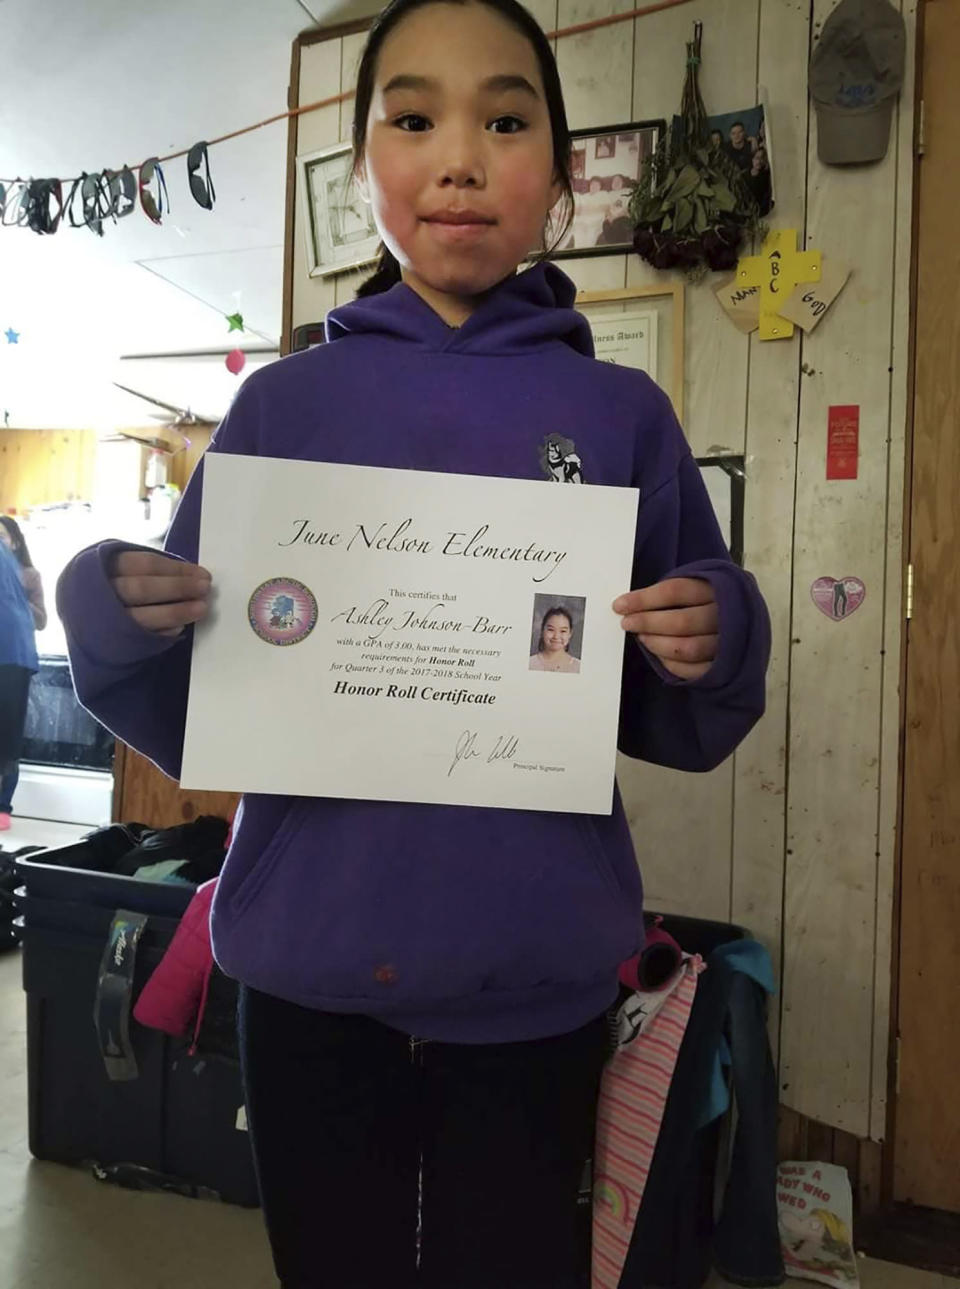 This 2018 photo provided by Scotty Barr shows his daughter Ashley Johnson Barr holding her Honor Roll certificate. Ashley was killed in Kotzebue, Alaska, in September 2018. Peter Wilson, of Kotzebue, Alaska, has pleaded guilty to first-degree murder and sexual abuse of a minor in Ashley's death, and will be sentenced Sept. 21, 2021, in Kotzebue. (Courtesy of Scotty Barr via AP)